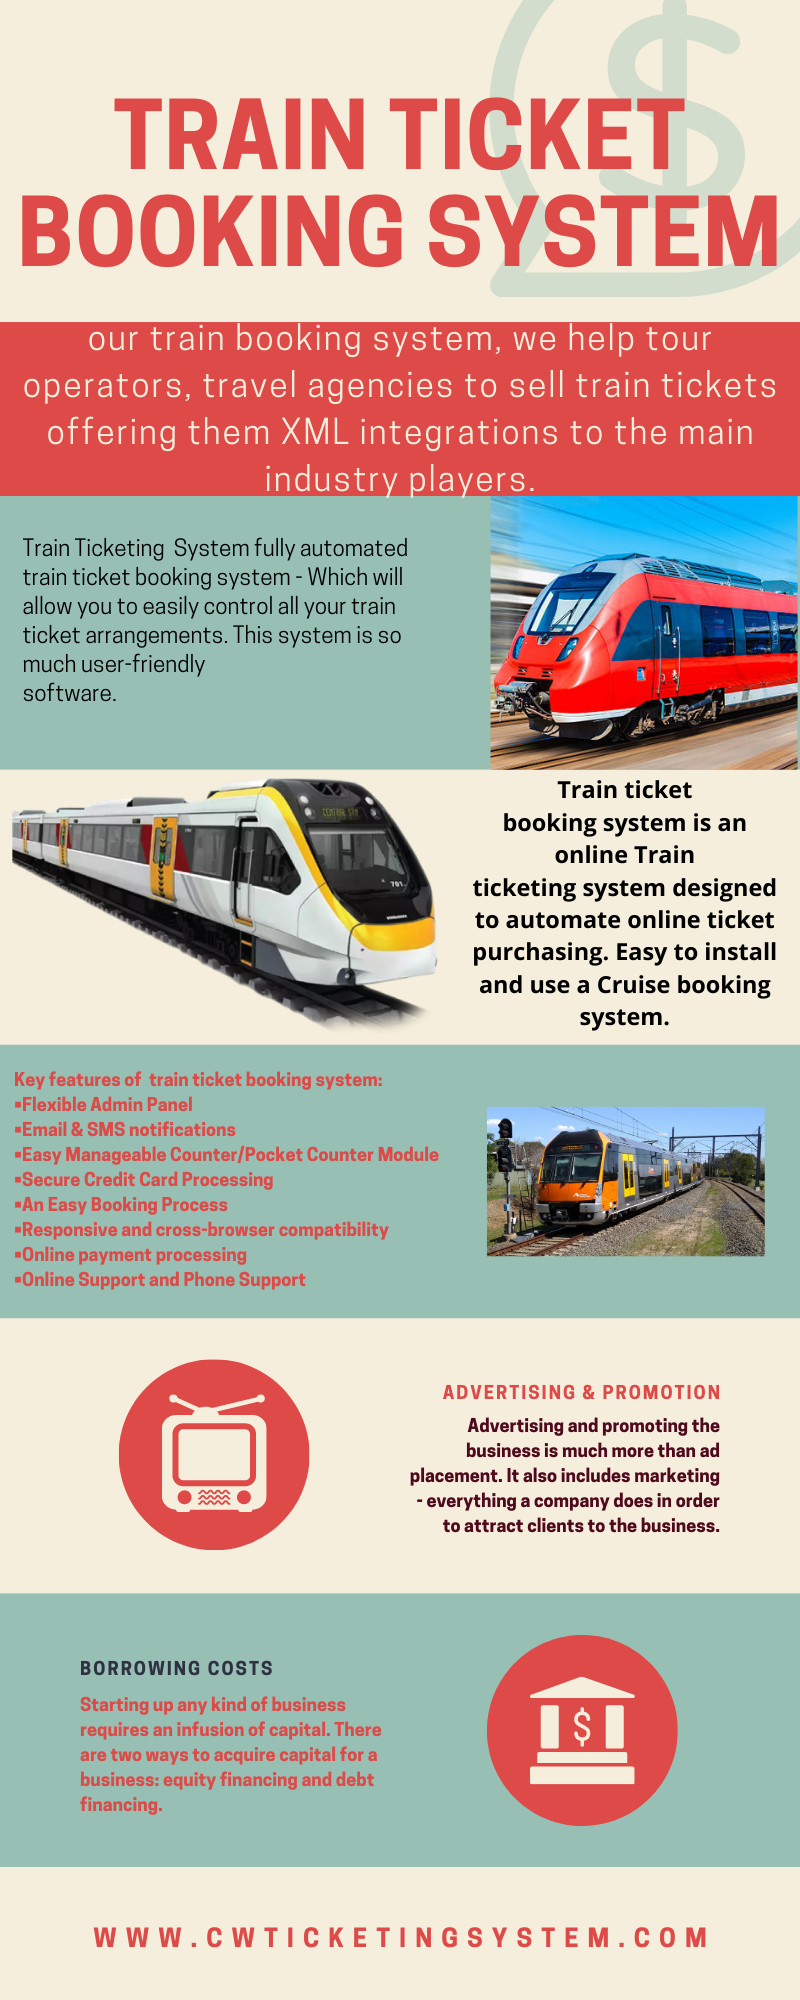 Train Ticket Booking System In 2021 Train Ticket Booking Train Booking Train Tickets